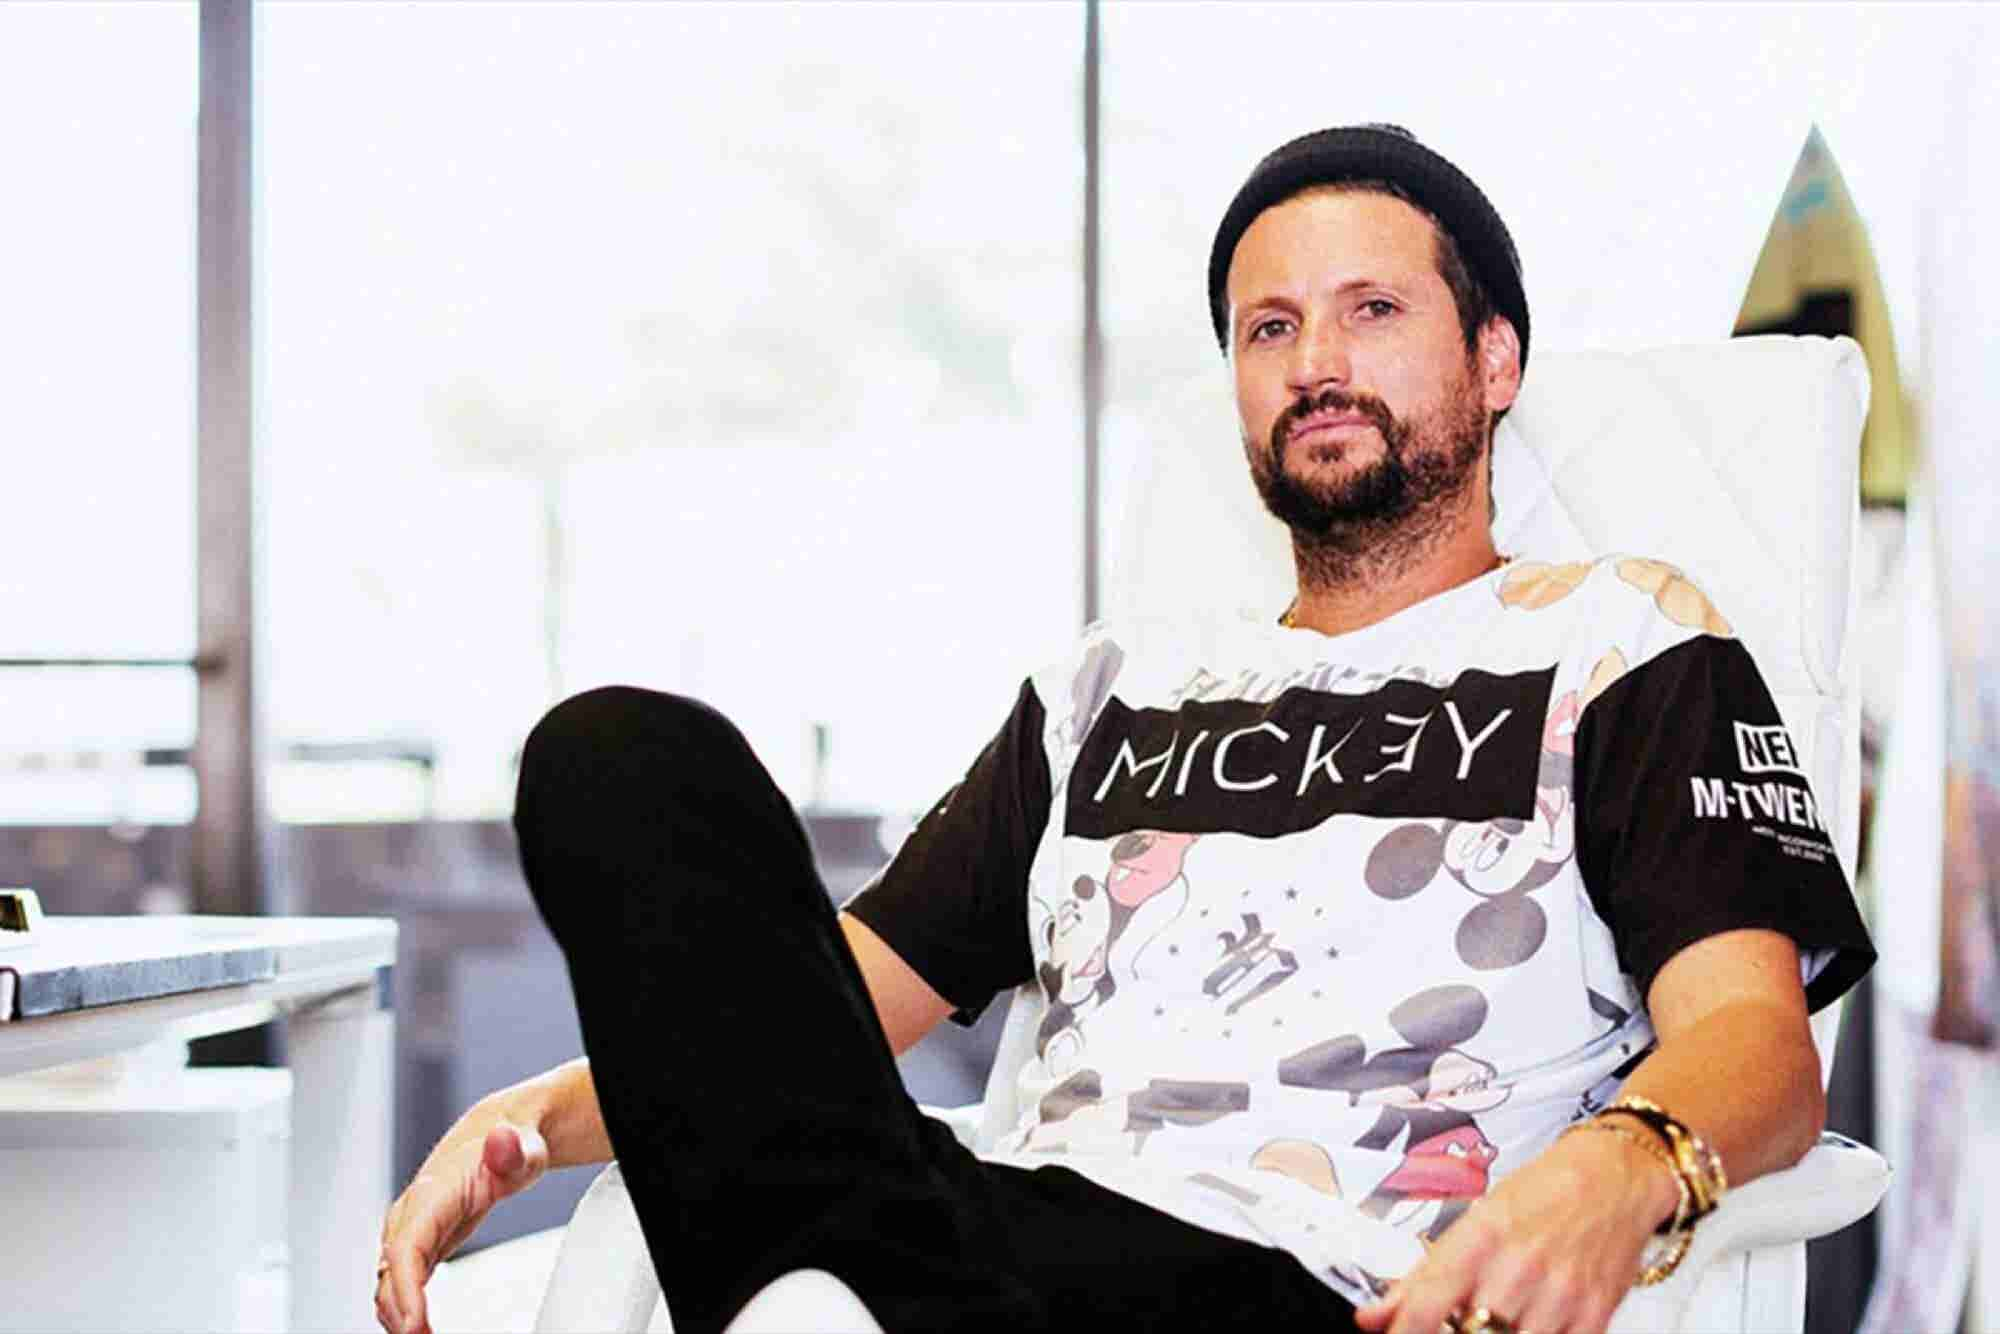 Beanies, Tees and Steez: How Shaun Neff Built a $100 Million Business...